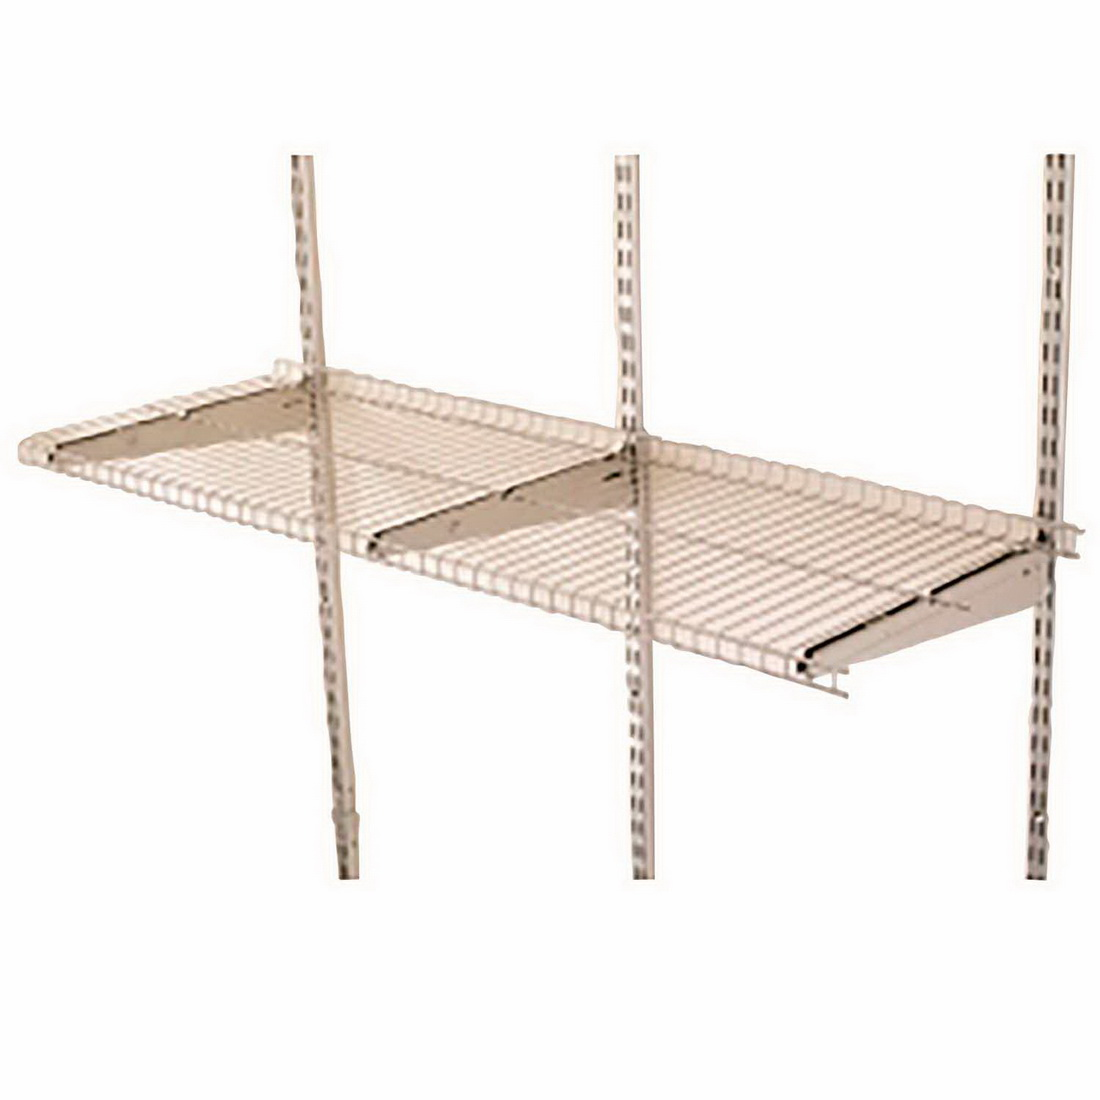 Rubbermaid FastTrack Wire Shelf 1200mm 5E2100